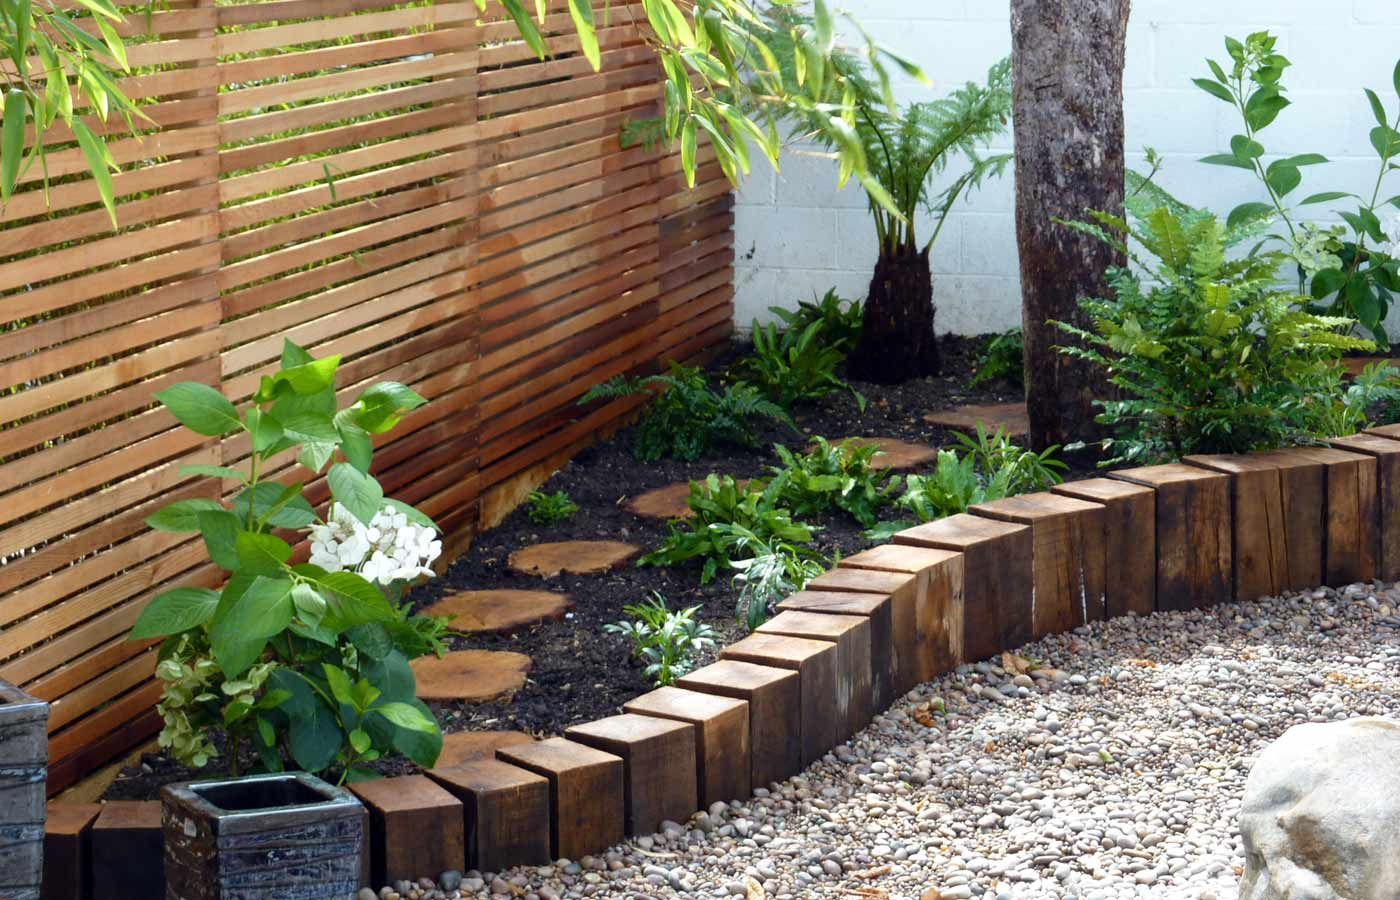 Wooden Stepping Stones Amongst The Plants And Lovely Edging!